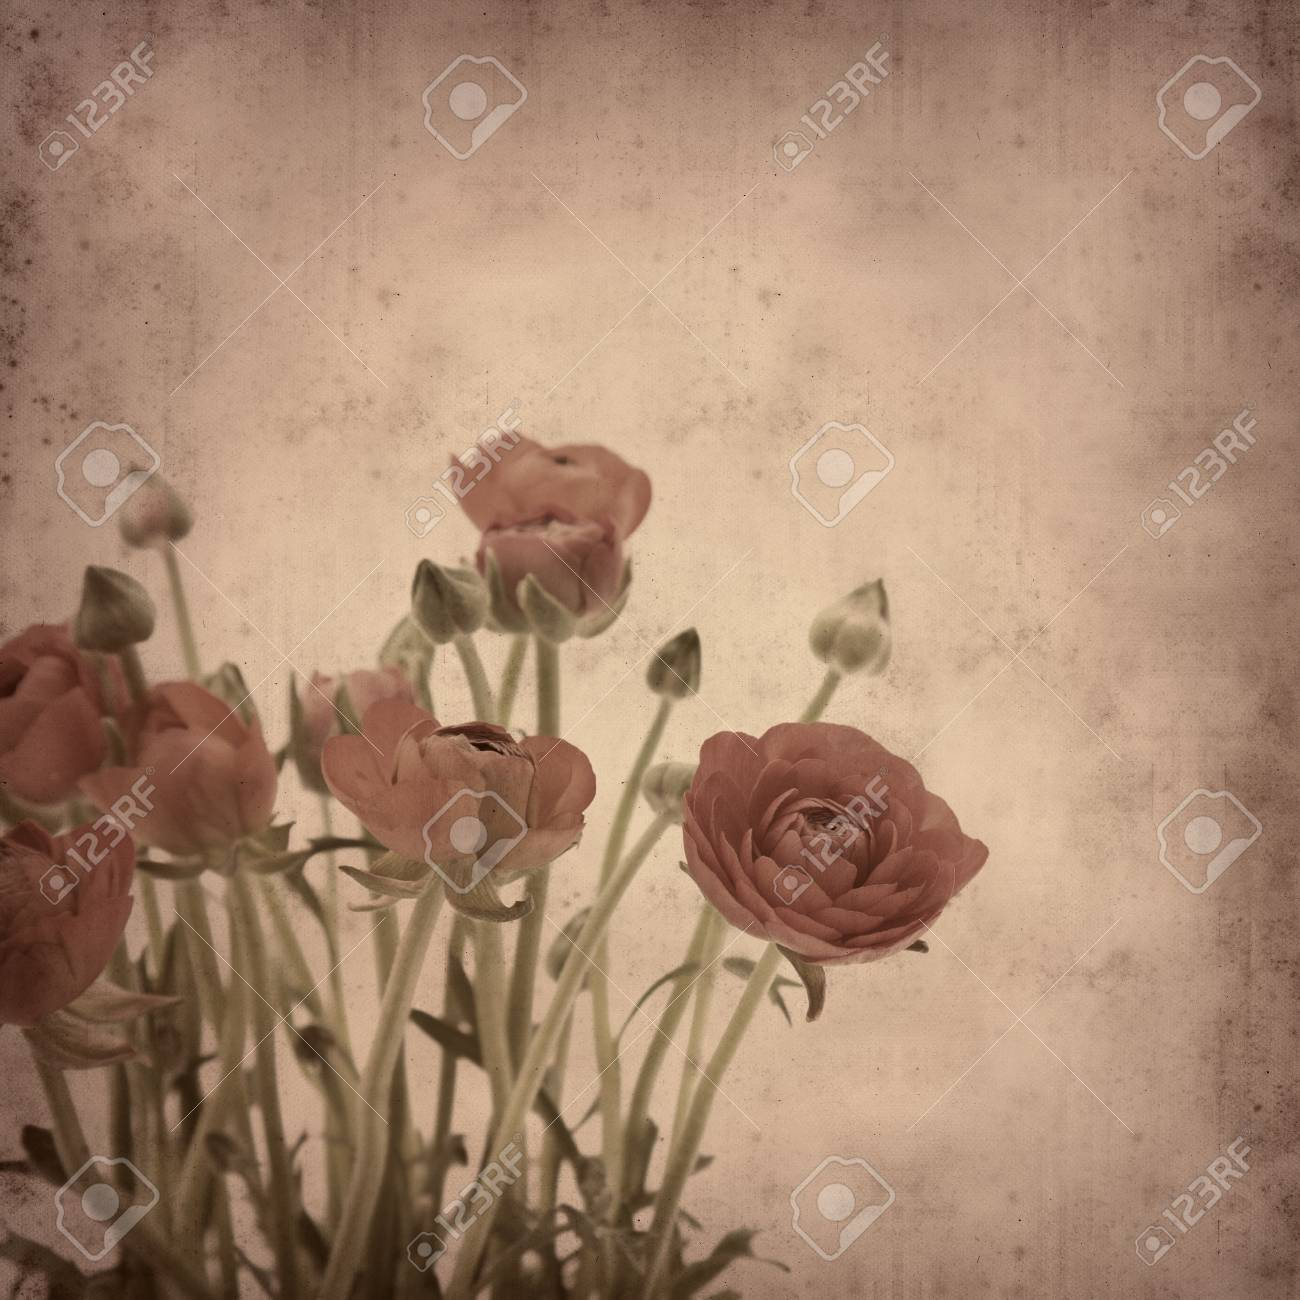 old paper background with Ranunculus asiaticus (Persian Buttercup) Stock Photo - 11864609